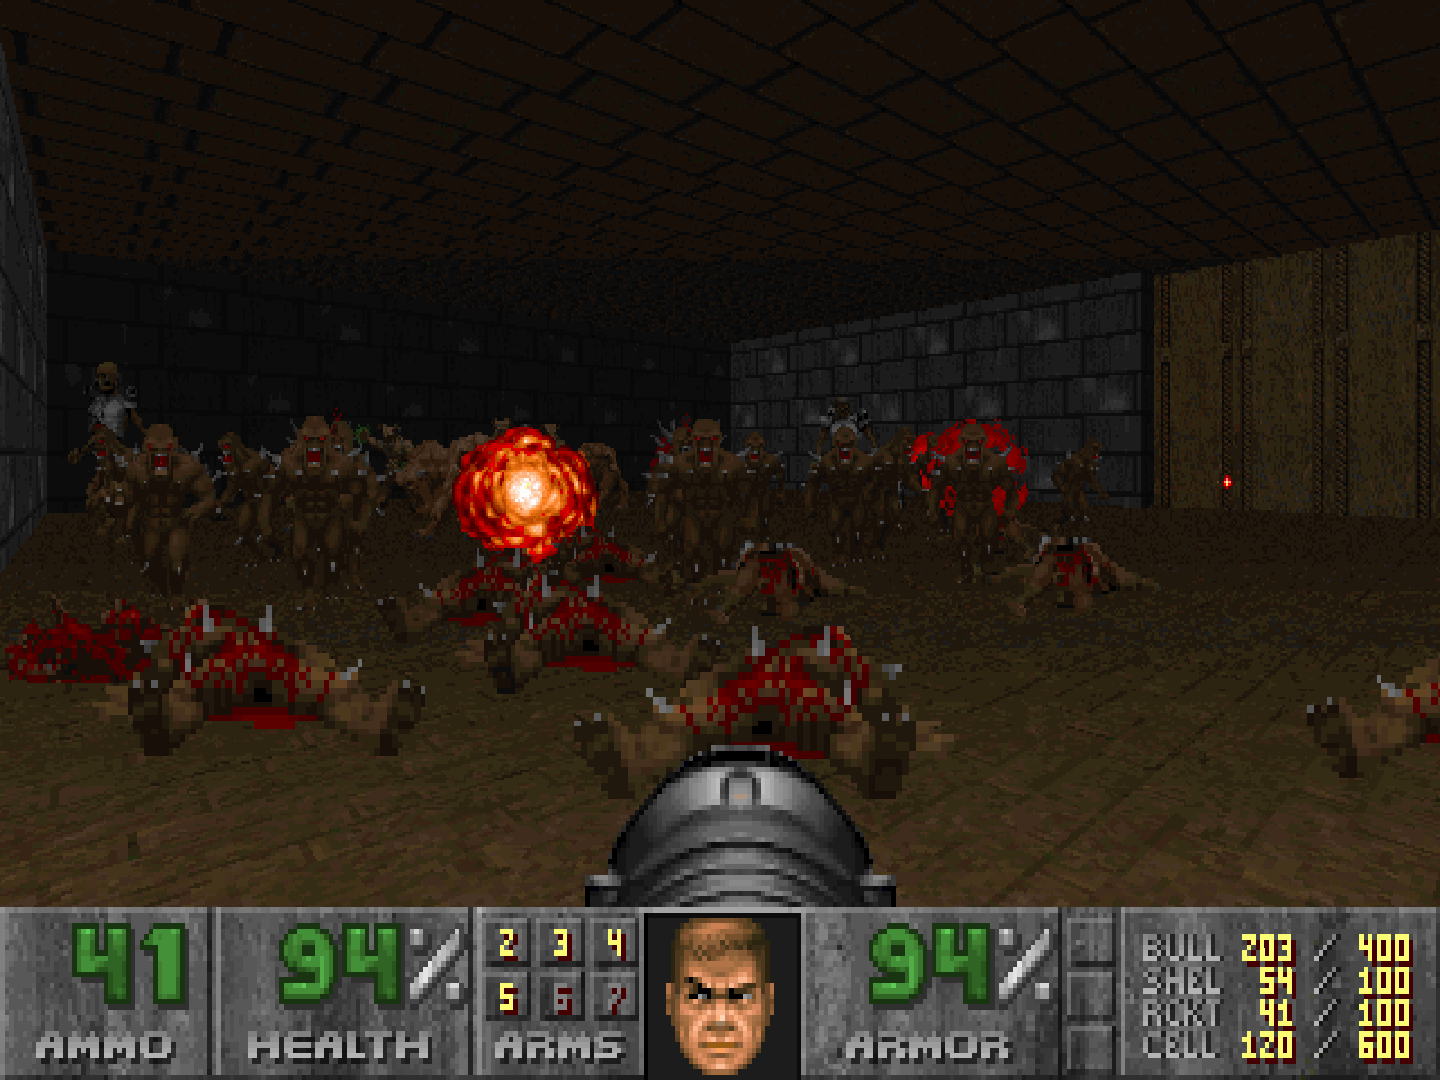 DOOM0007.png.adc0cc16fbae376b01a320f4ff882e5d.png